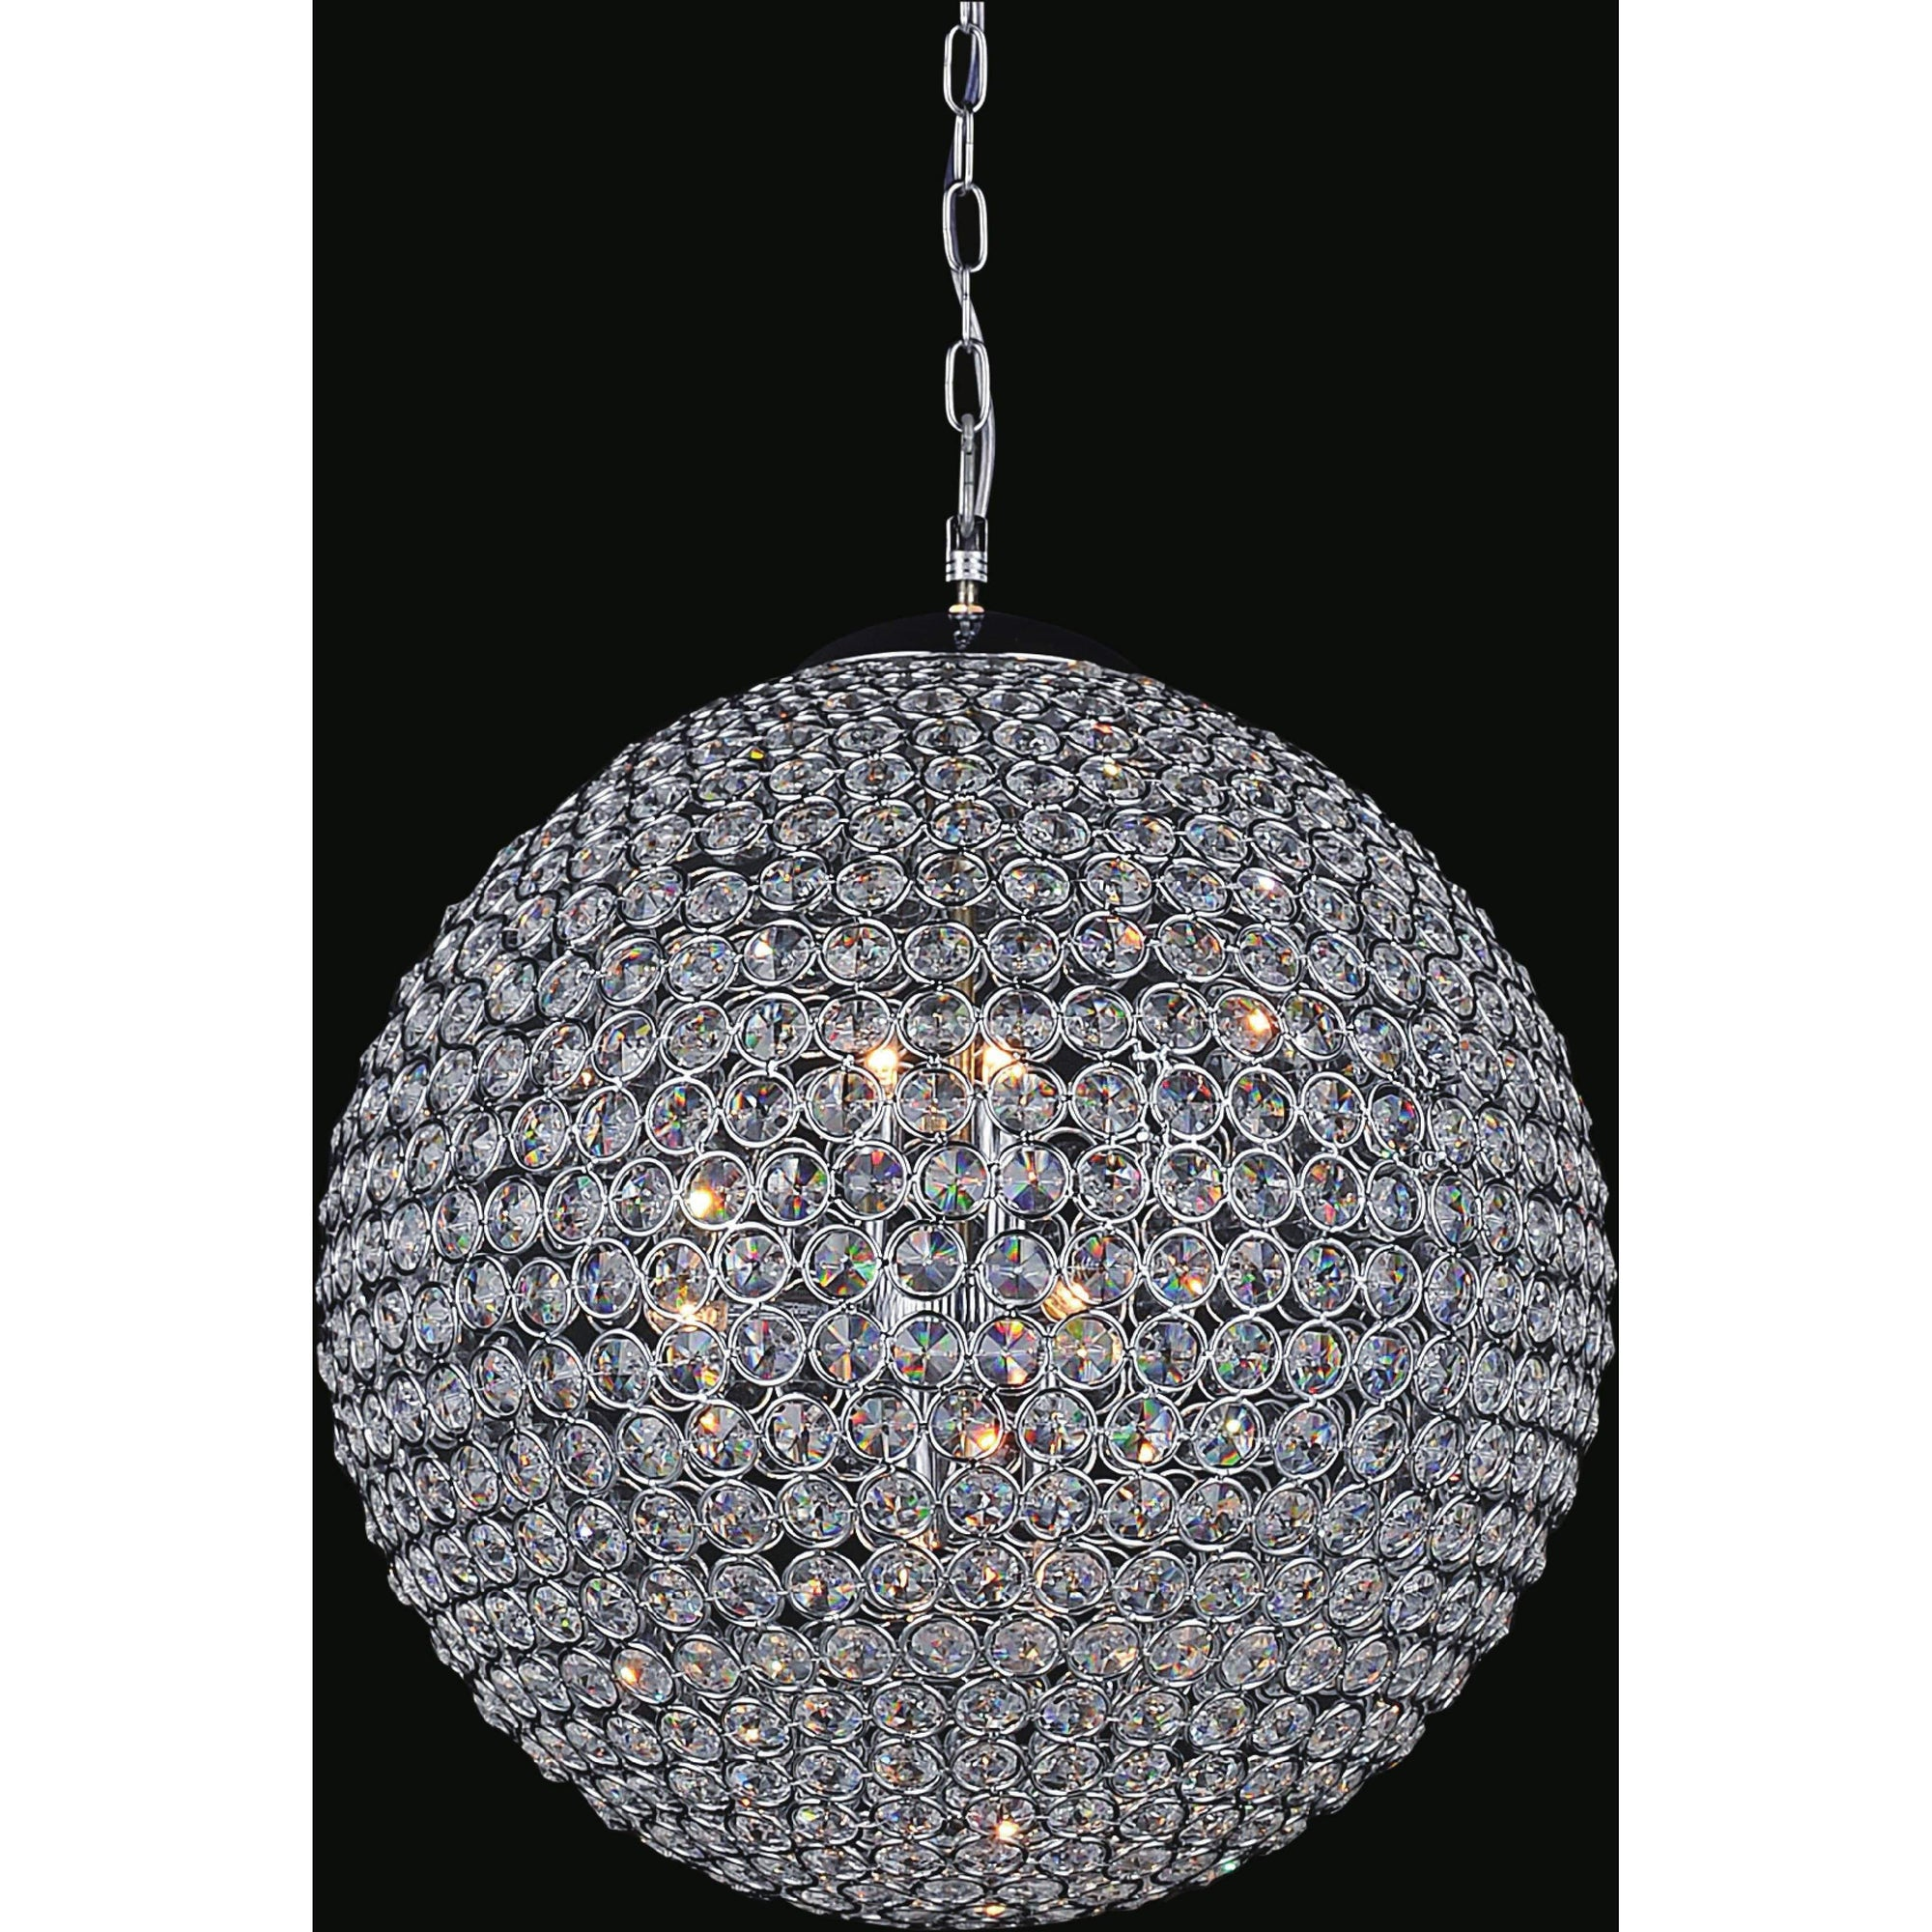 CWI Lighting Chandeliers Chrome / K9 Clear Globe 26 Light Chandelier with Chrome finish by CWI Lighting QS8353P40C